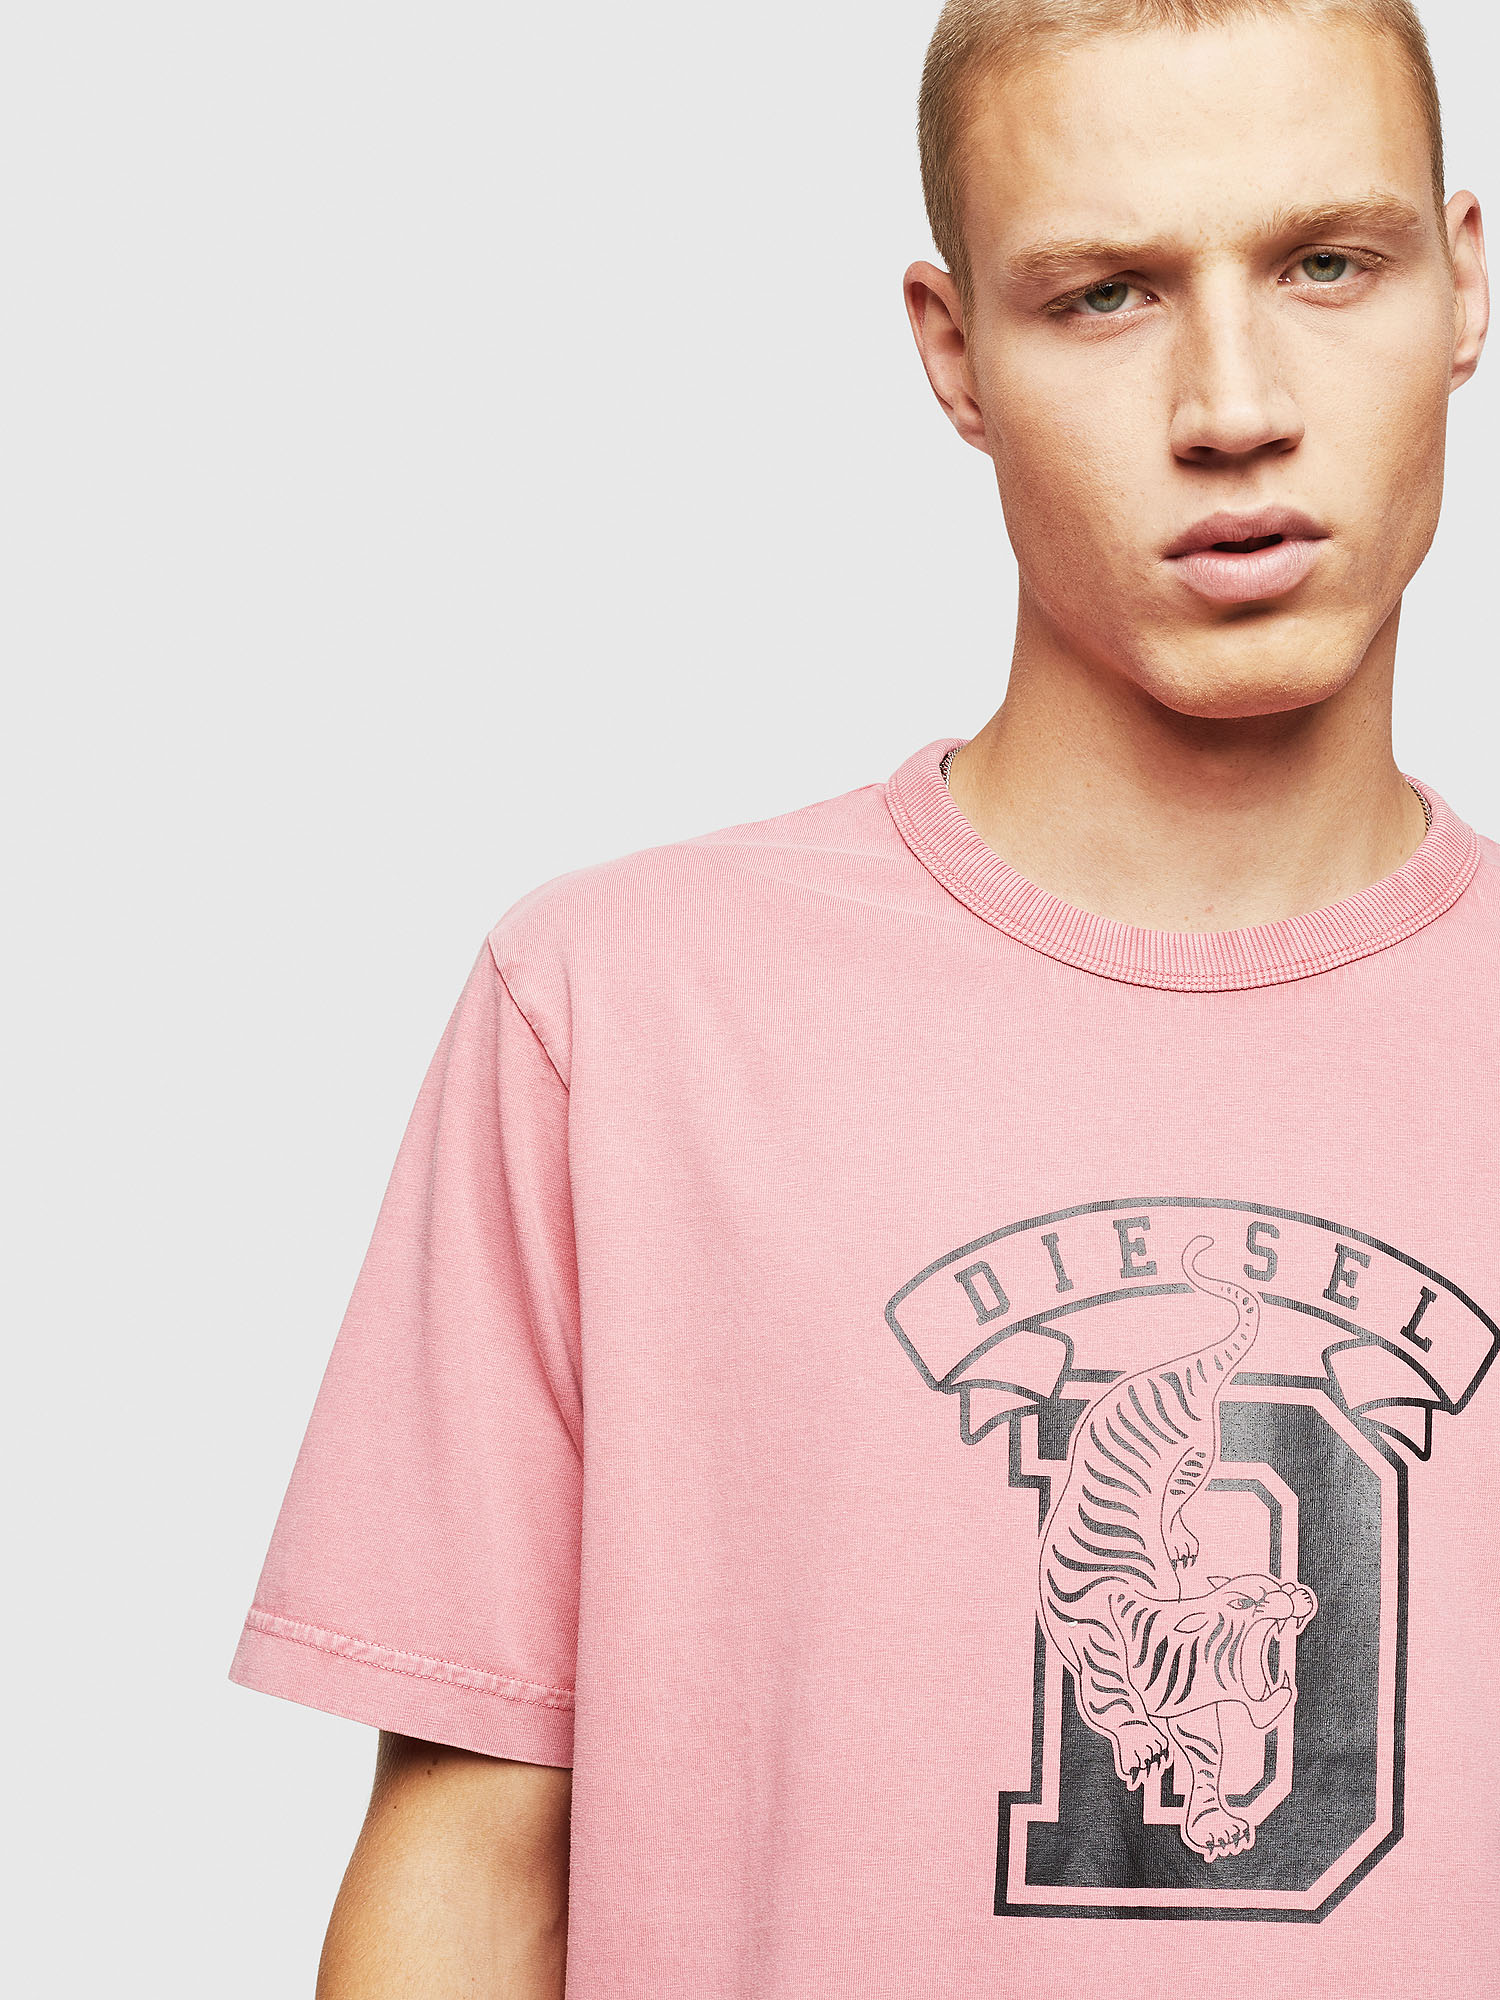 Diesel - T-JUST-B2,  - T-Shirts - Image 3